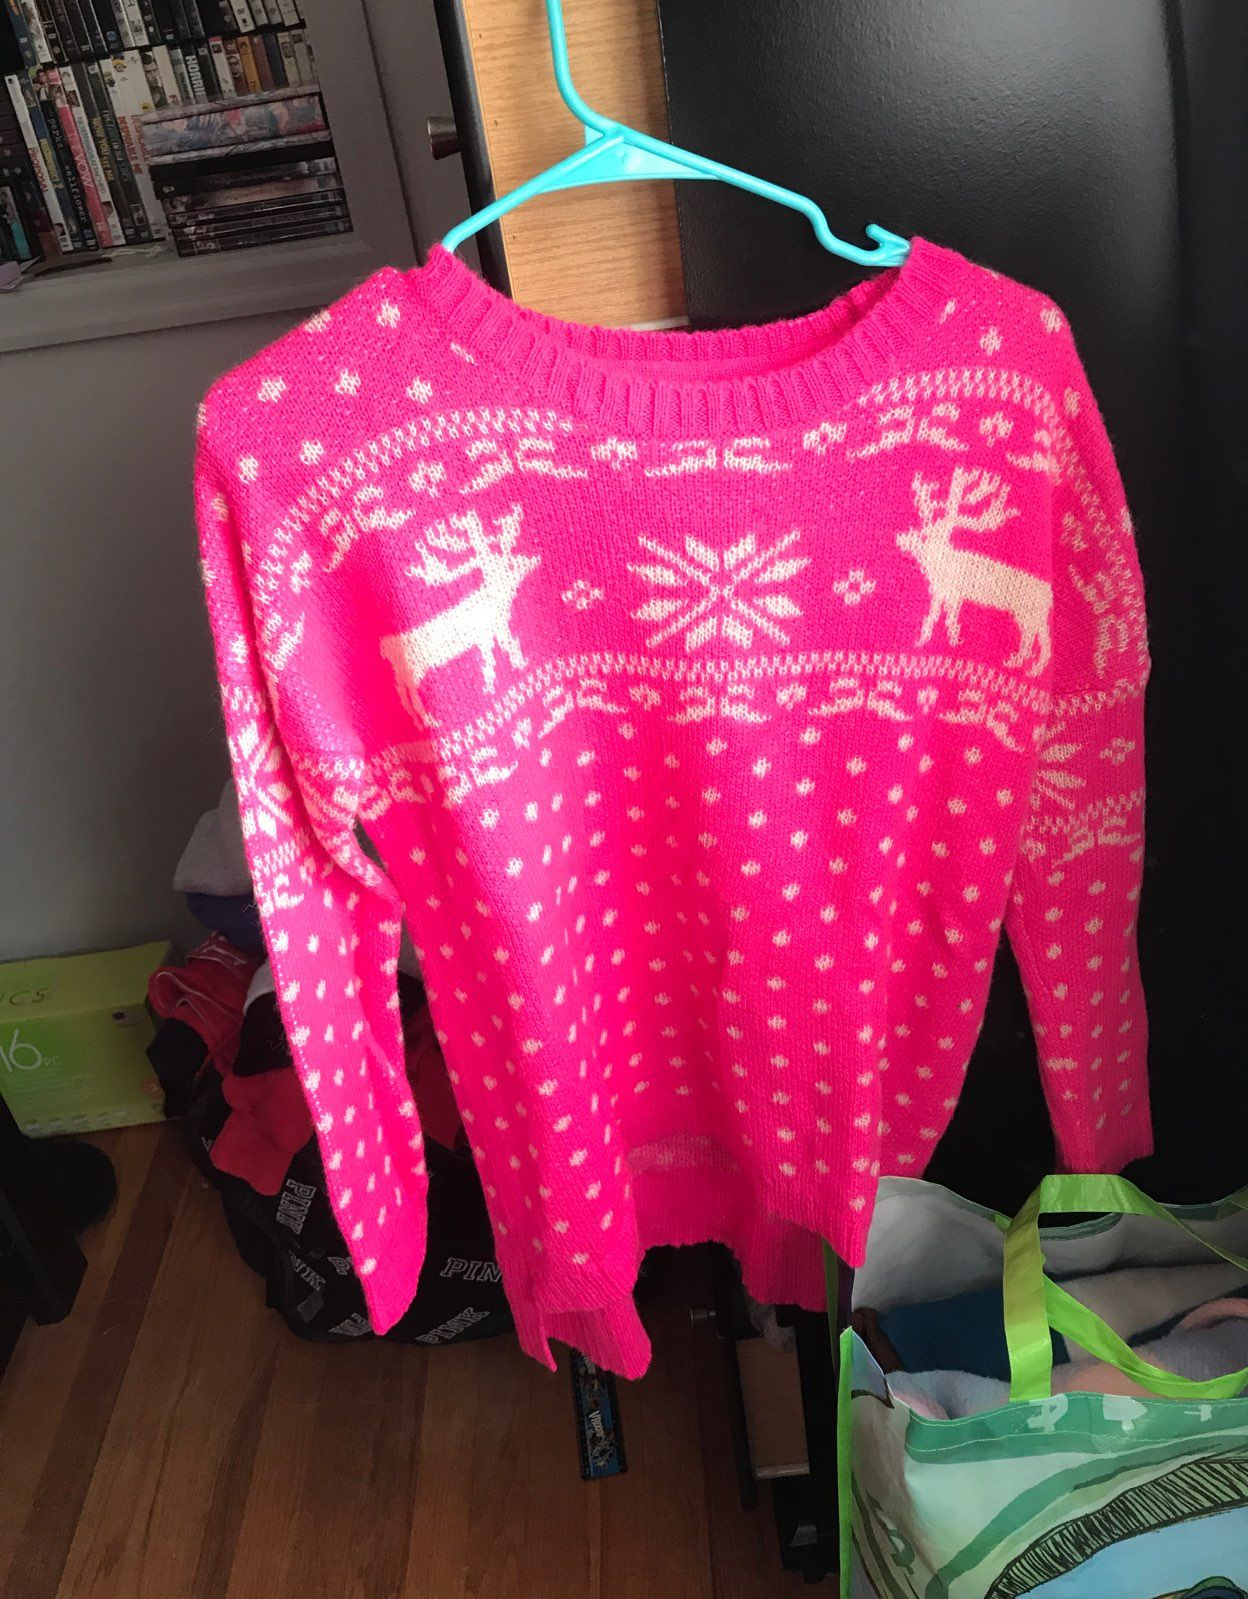 Forever 21 Pink Holiday Sweater - Mercari: BUY & SELL THINGS YOU LOVE